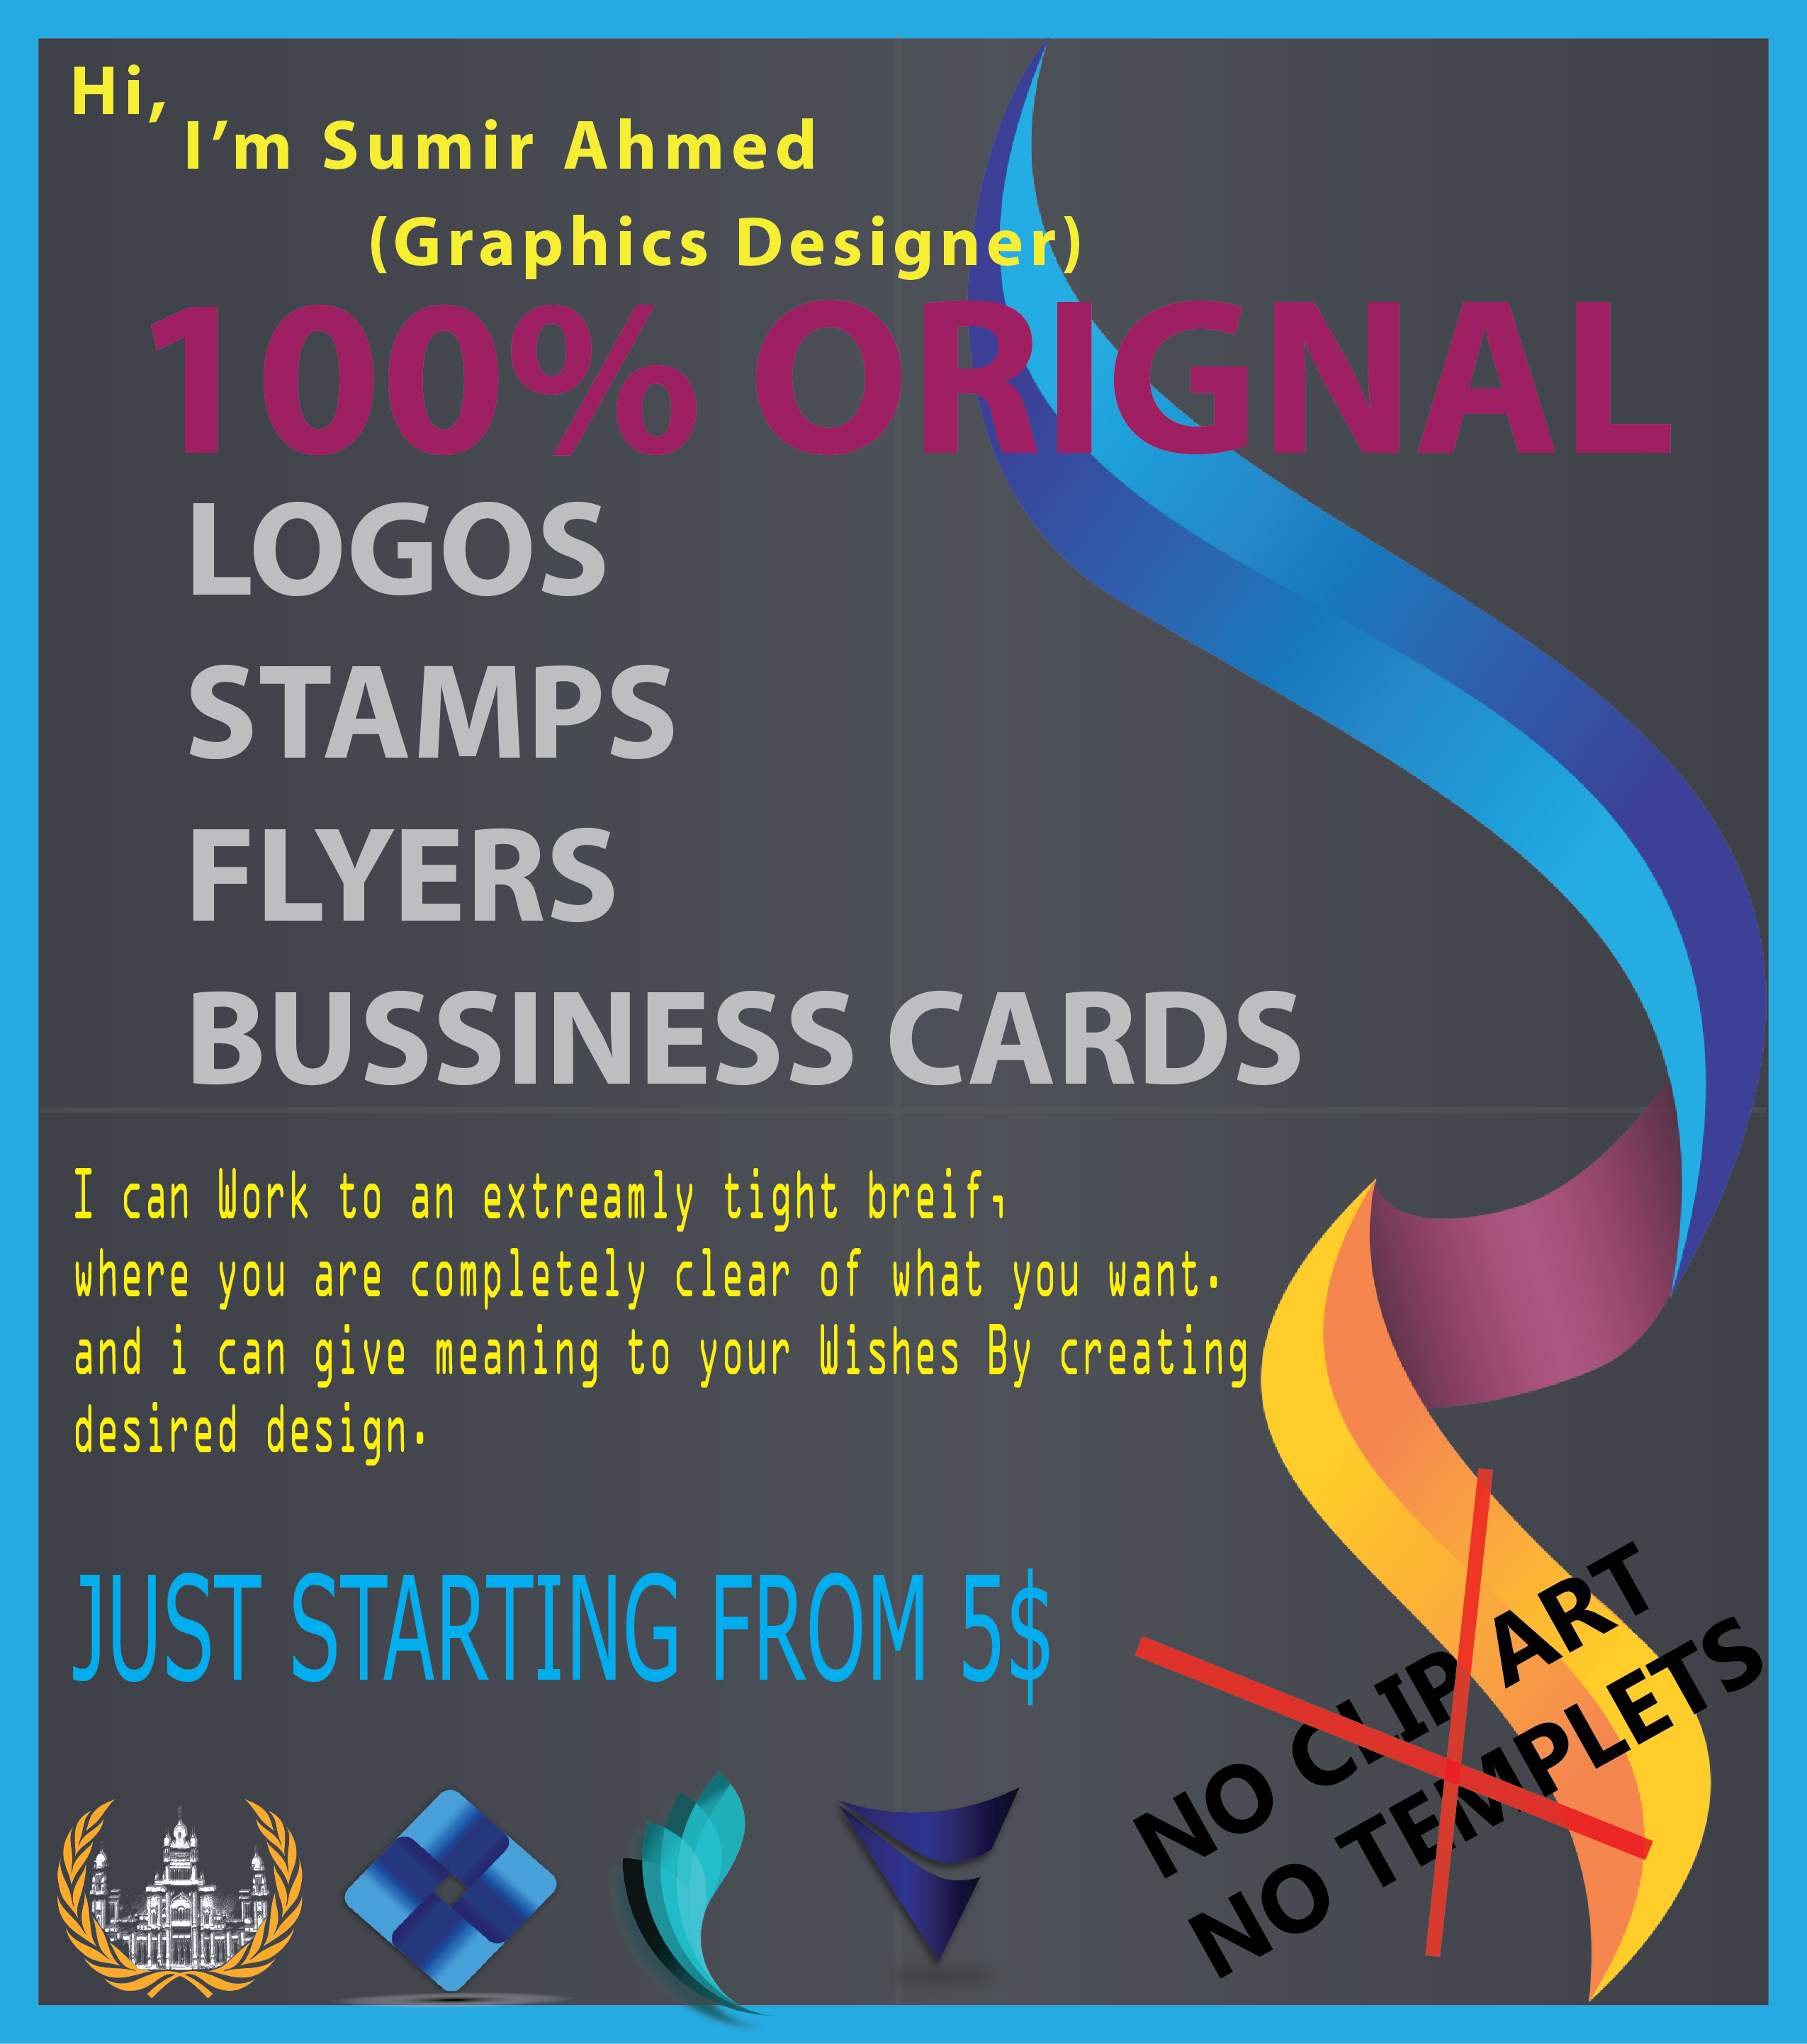 Design Logos / Business Cards Etc You want for $5